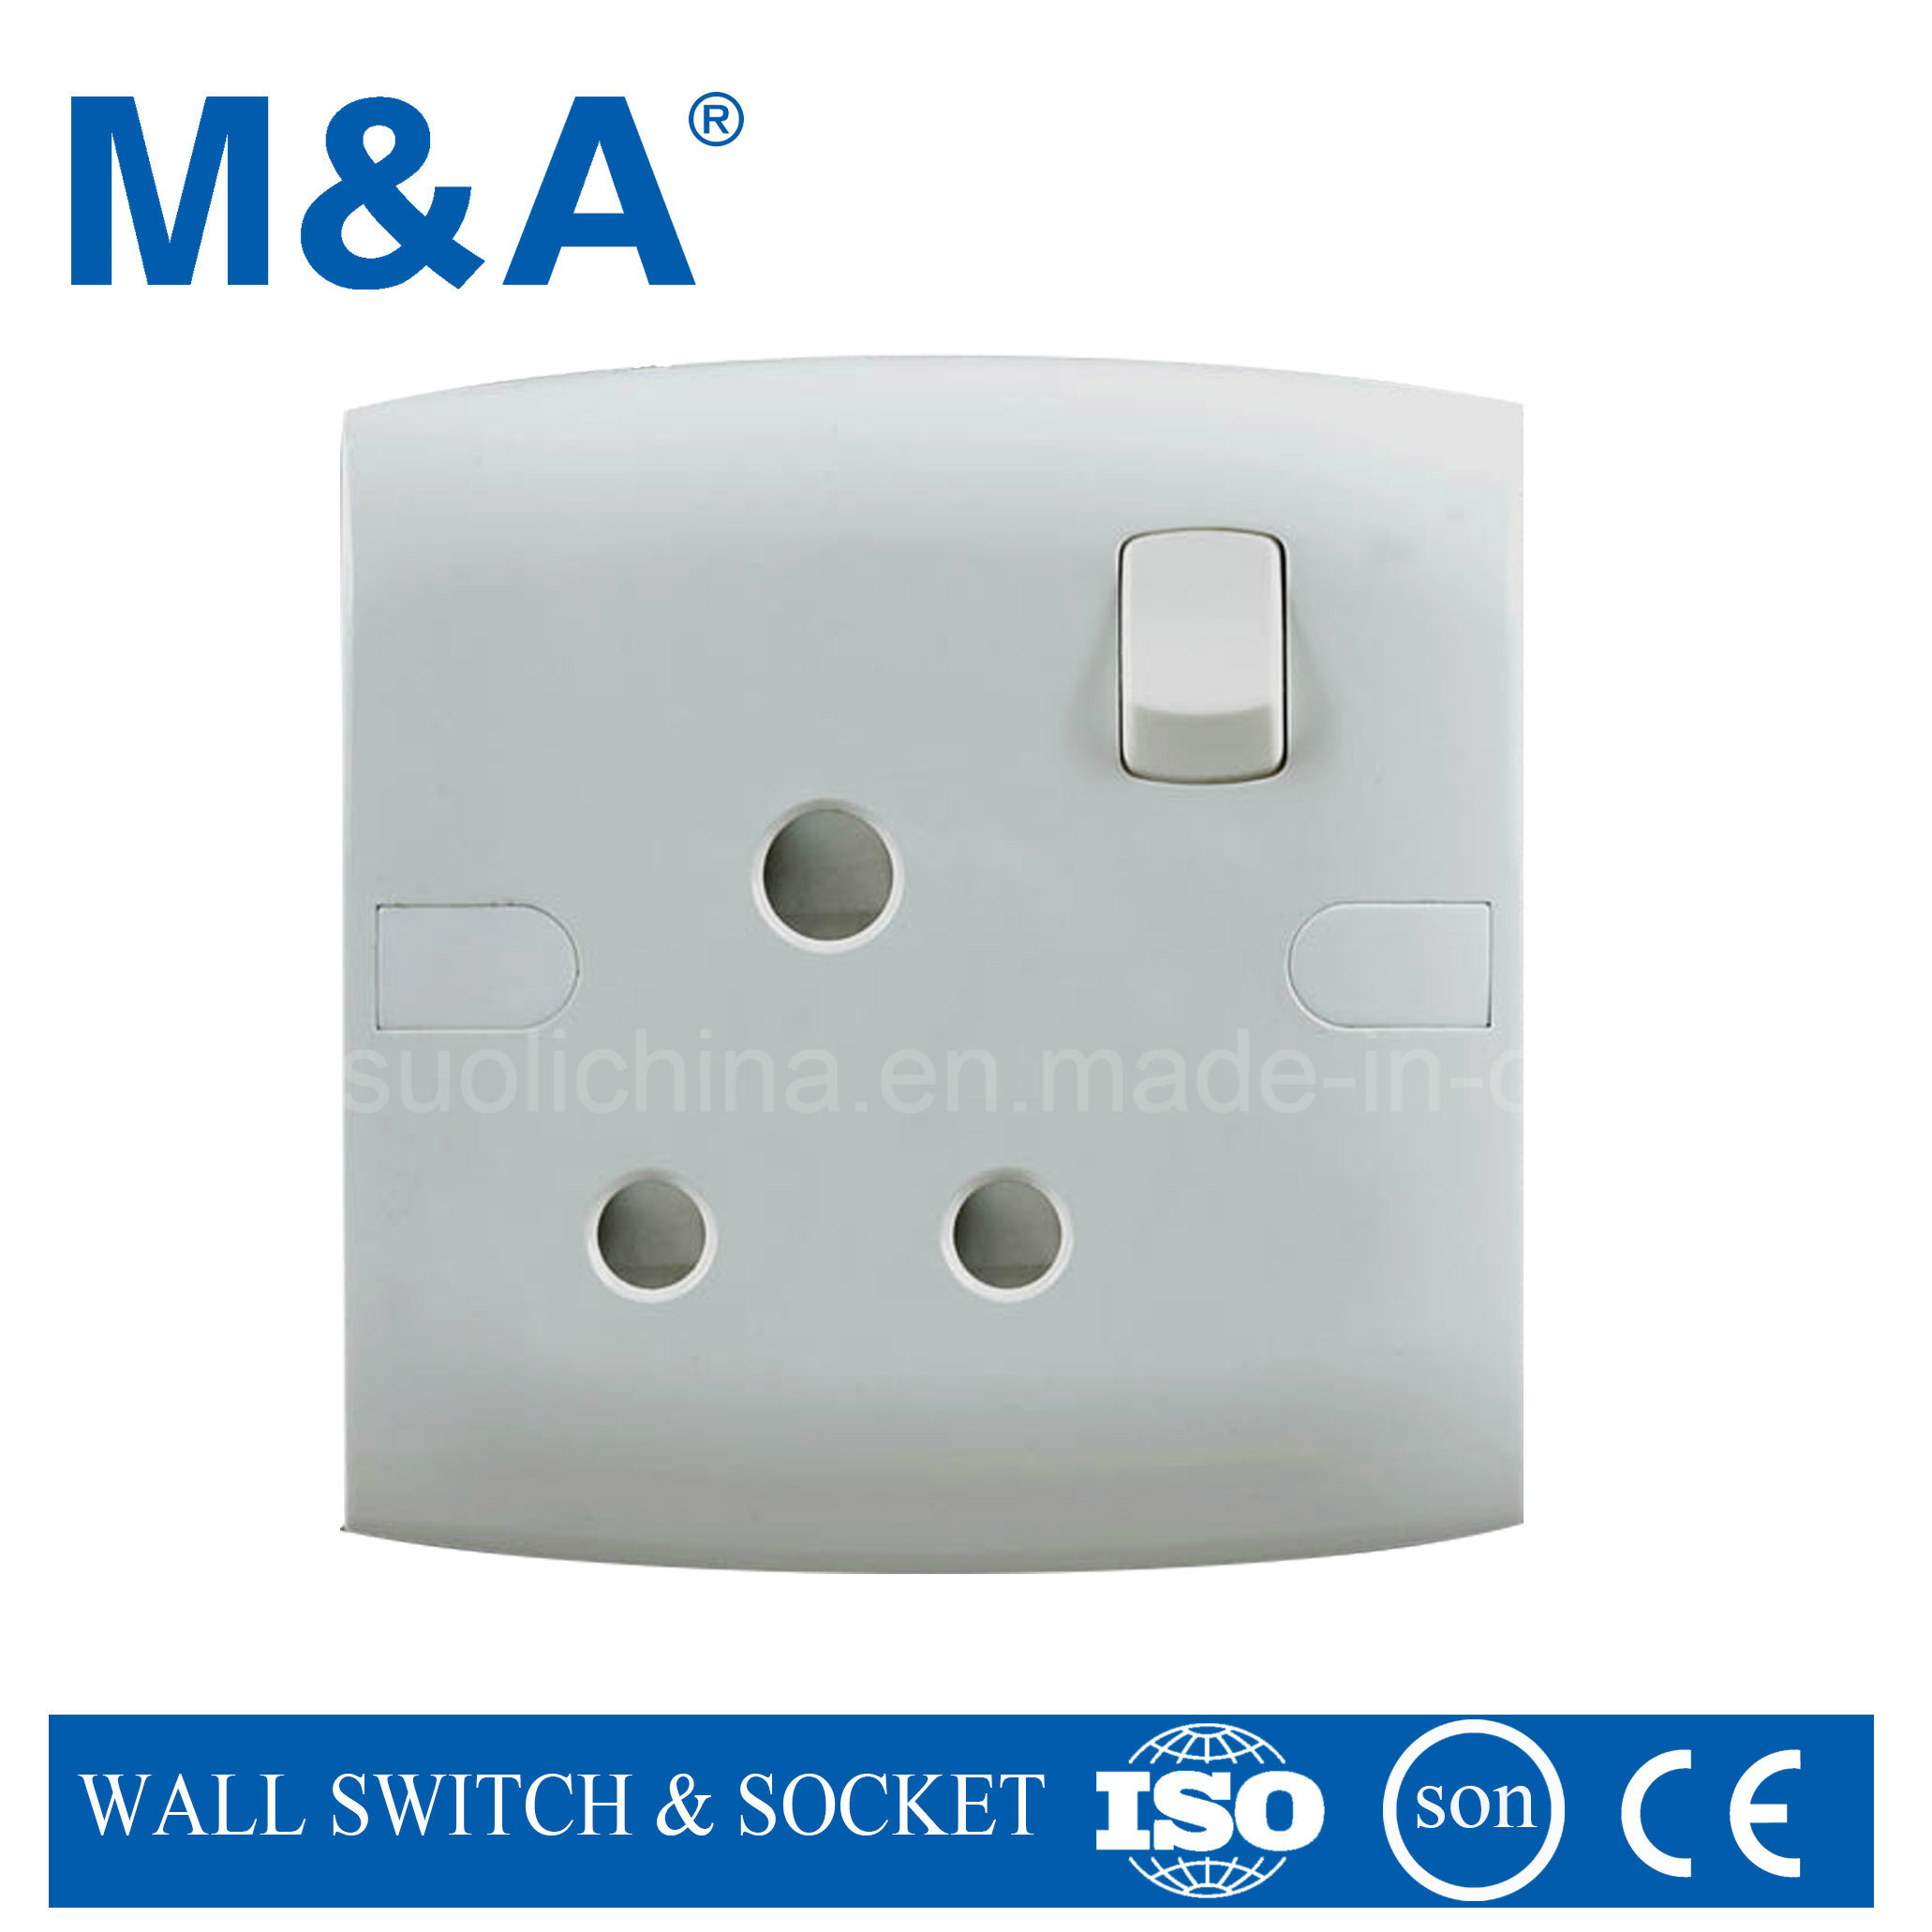 Me Series 1 Gang 15 a Switched Socket